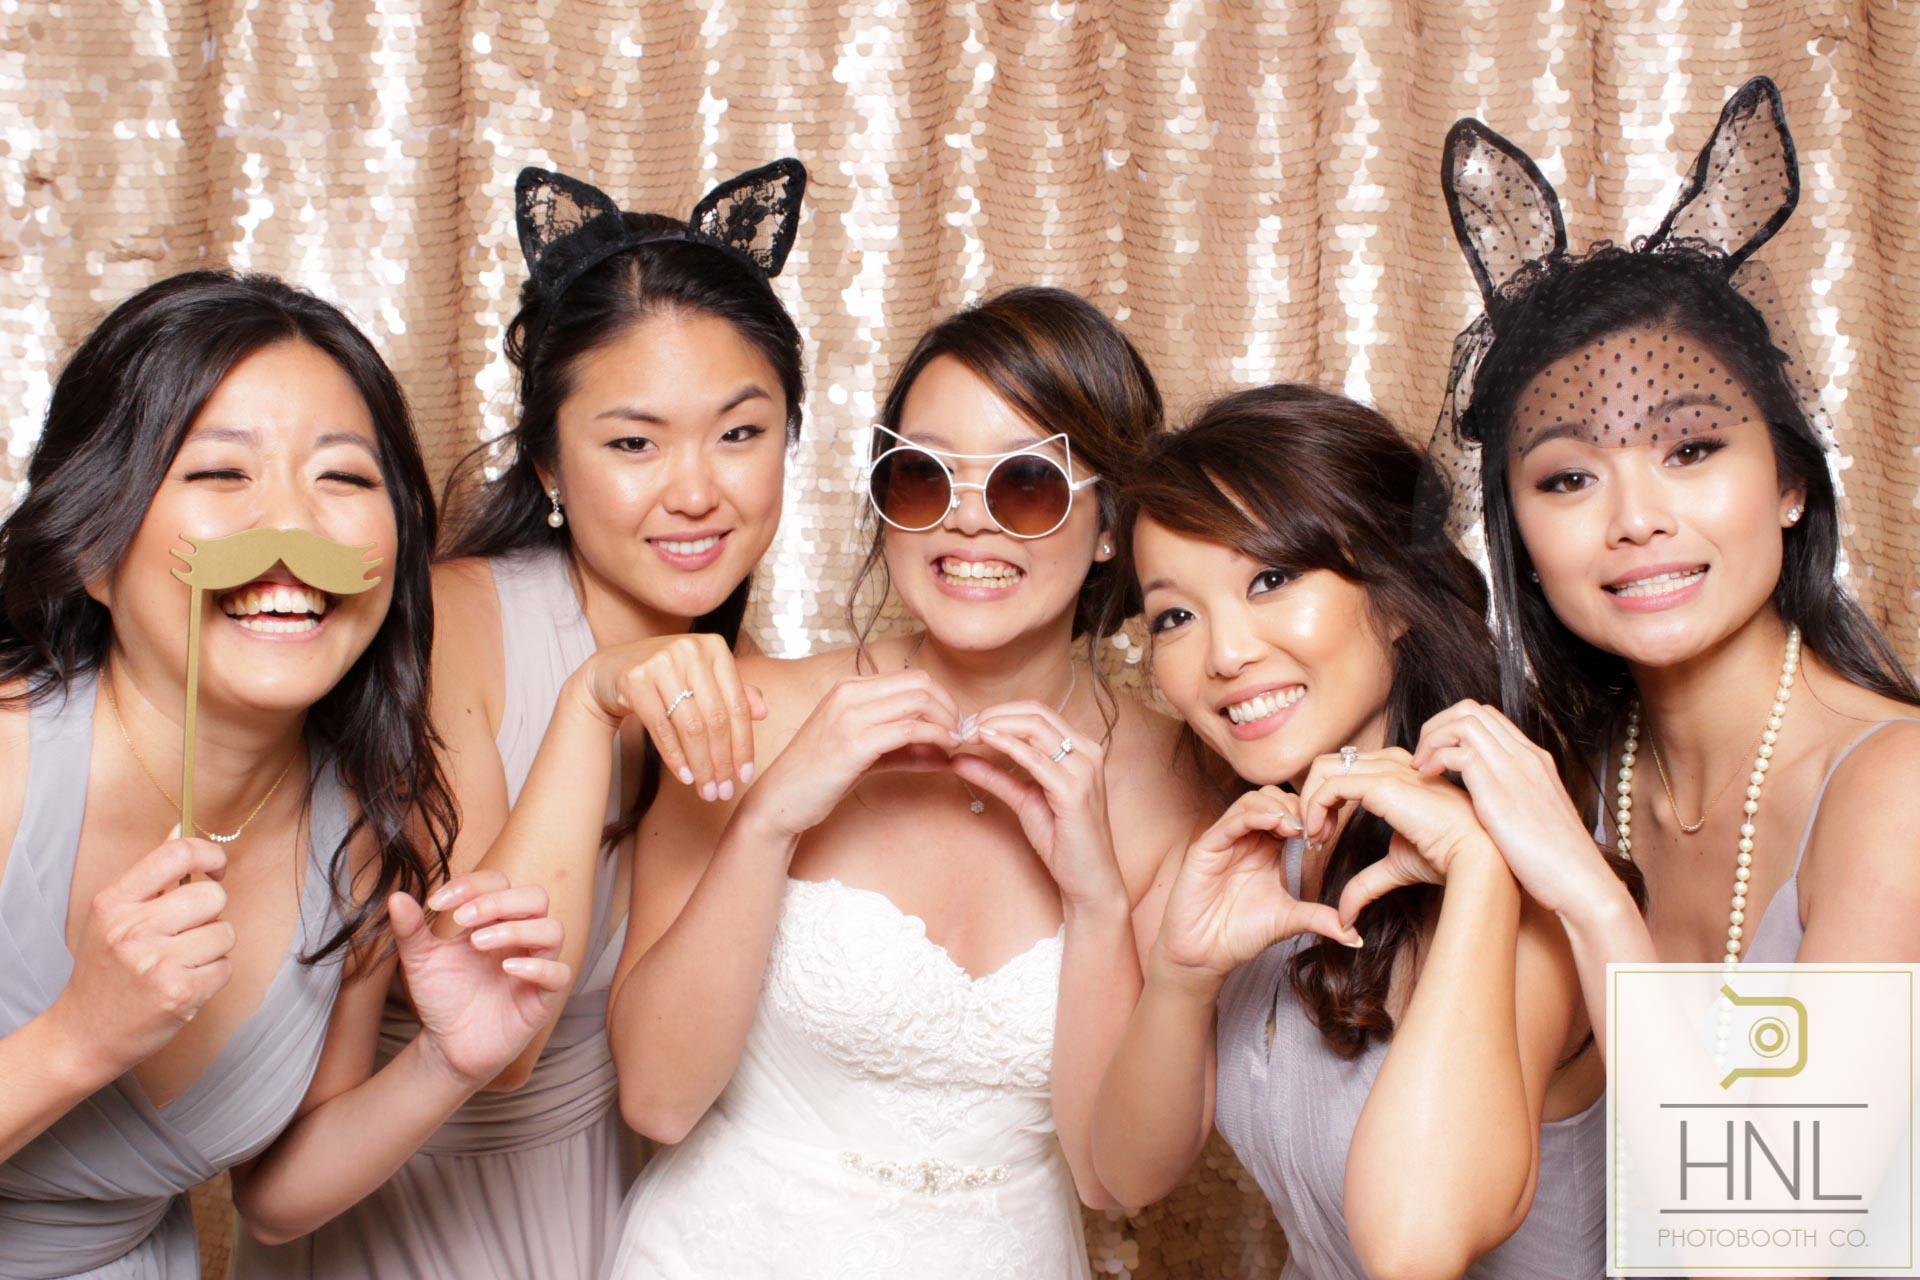 WEDDINGS - We love weddings so much that we specialize in them! Our sleek and clean photo booths are opened-air style to match any decor. The booth produces studio quality images and prints, and looks absolutely incredible in any wedding venue.